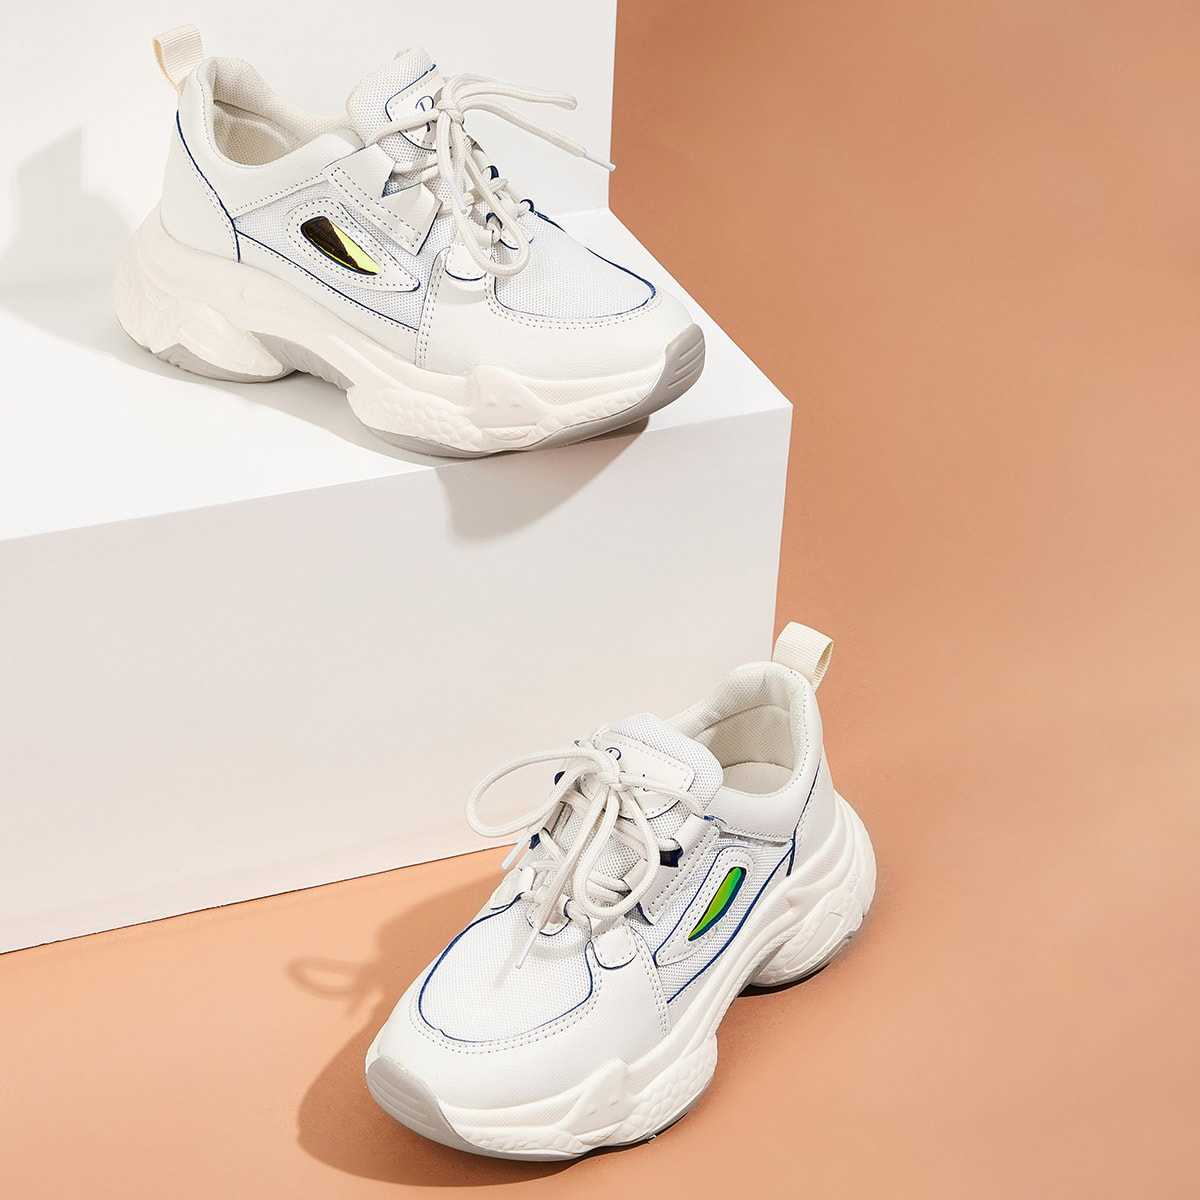 Lace-up Front Chunky Sole Mesh Trainers in White by ROMWE on GOOFASH